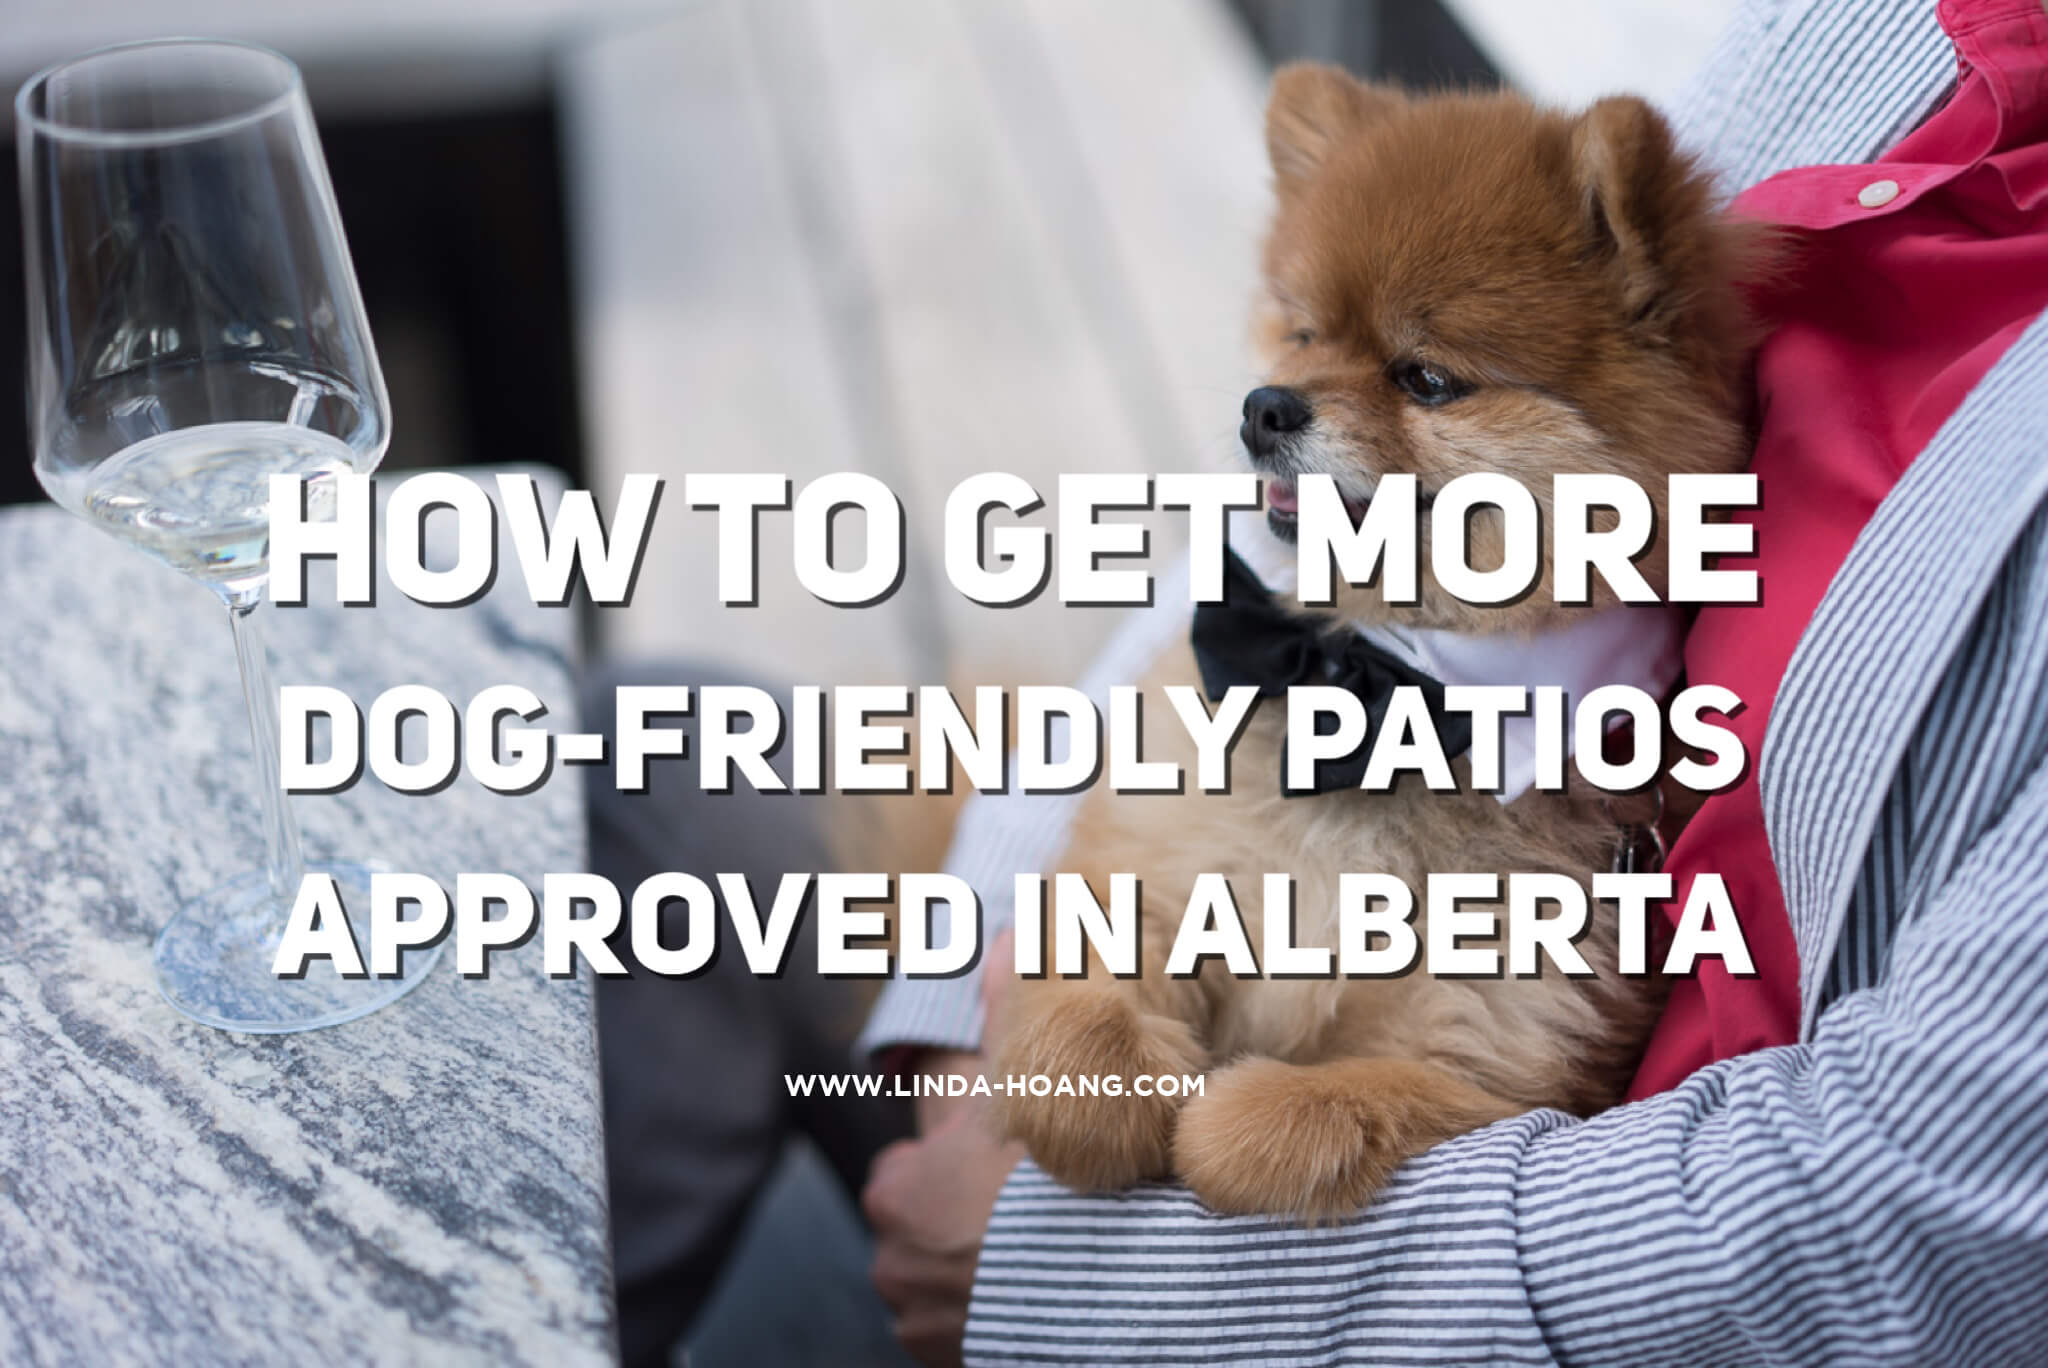 How To Get More Dog Friendly Patios Approved In Alberta   LINDA HOANG |  EDMONTON BLOG